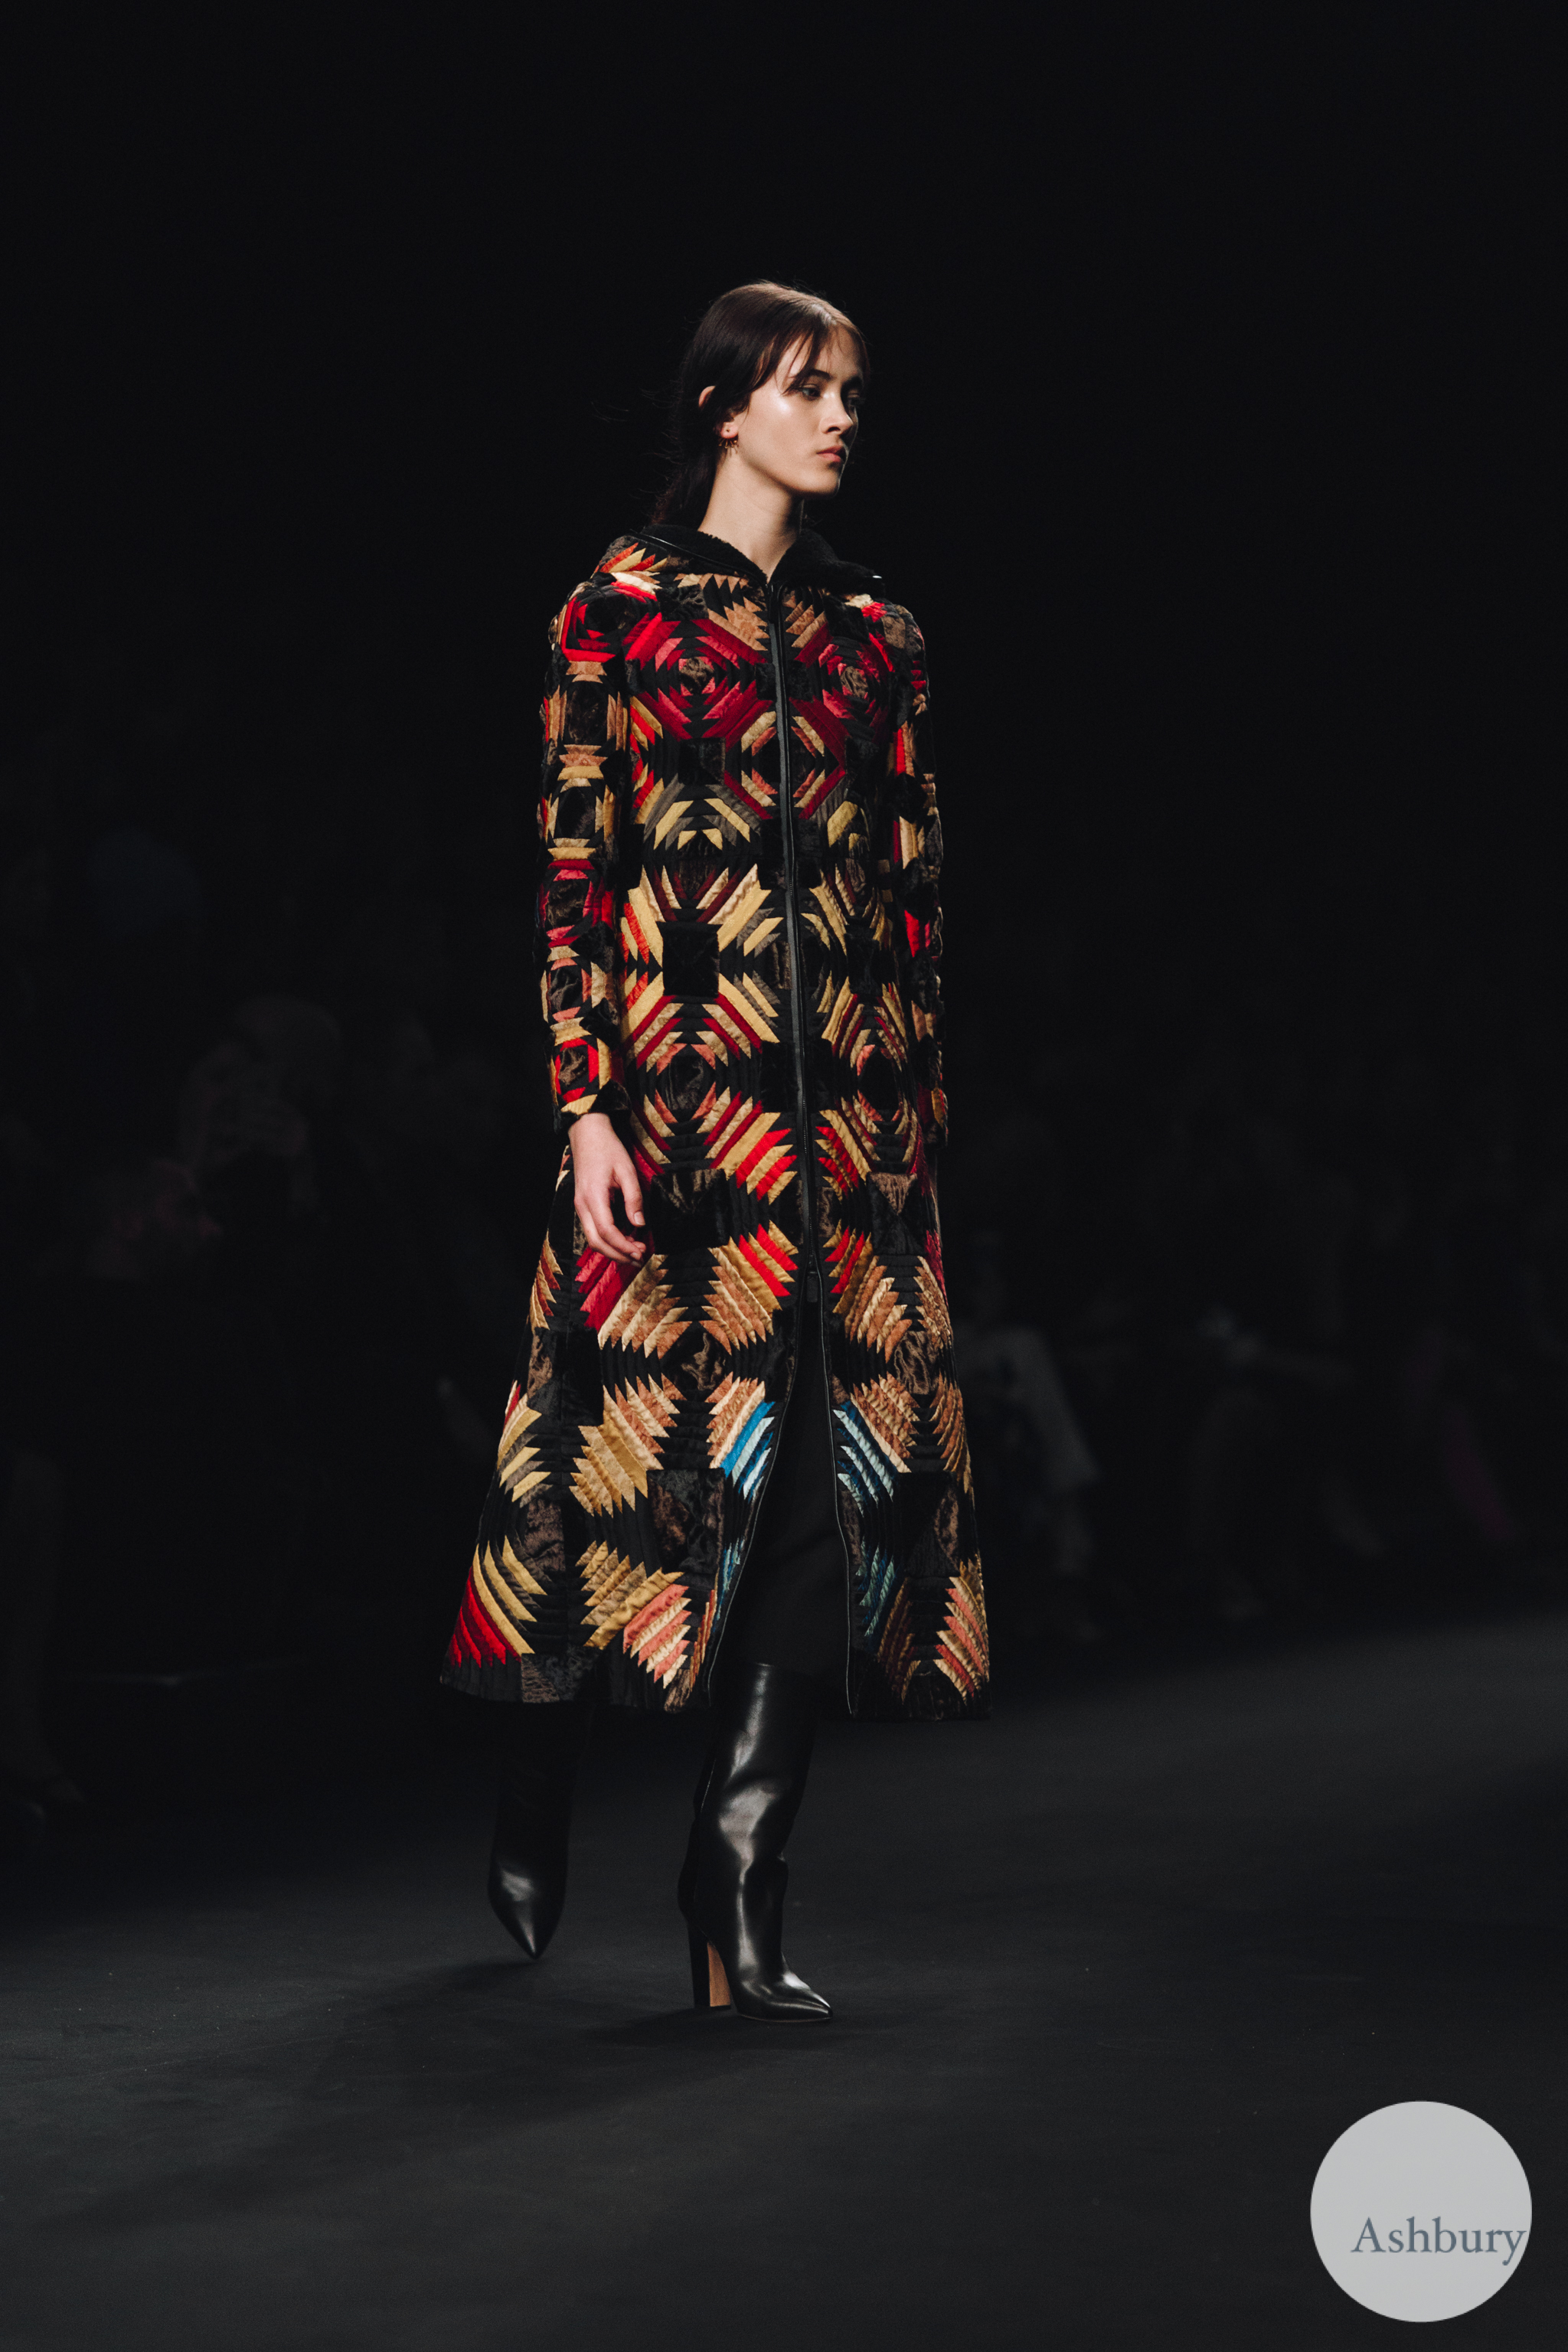 valentino fall winter 2015 - greta varlese